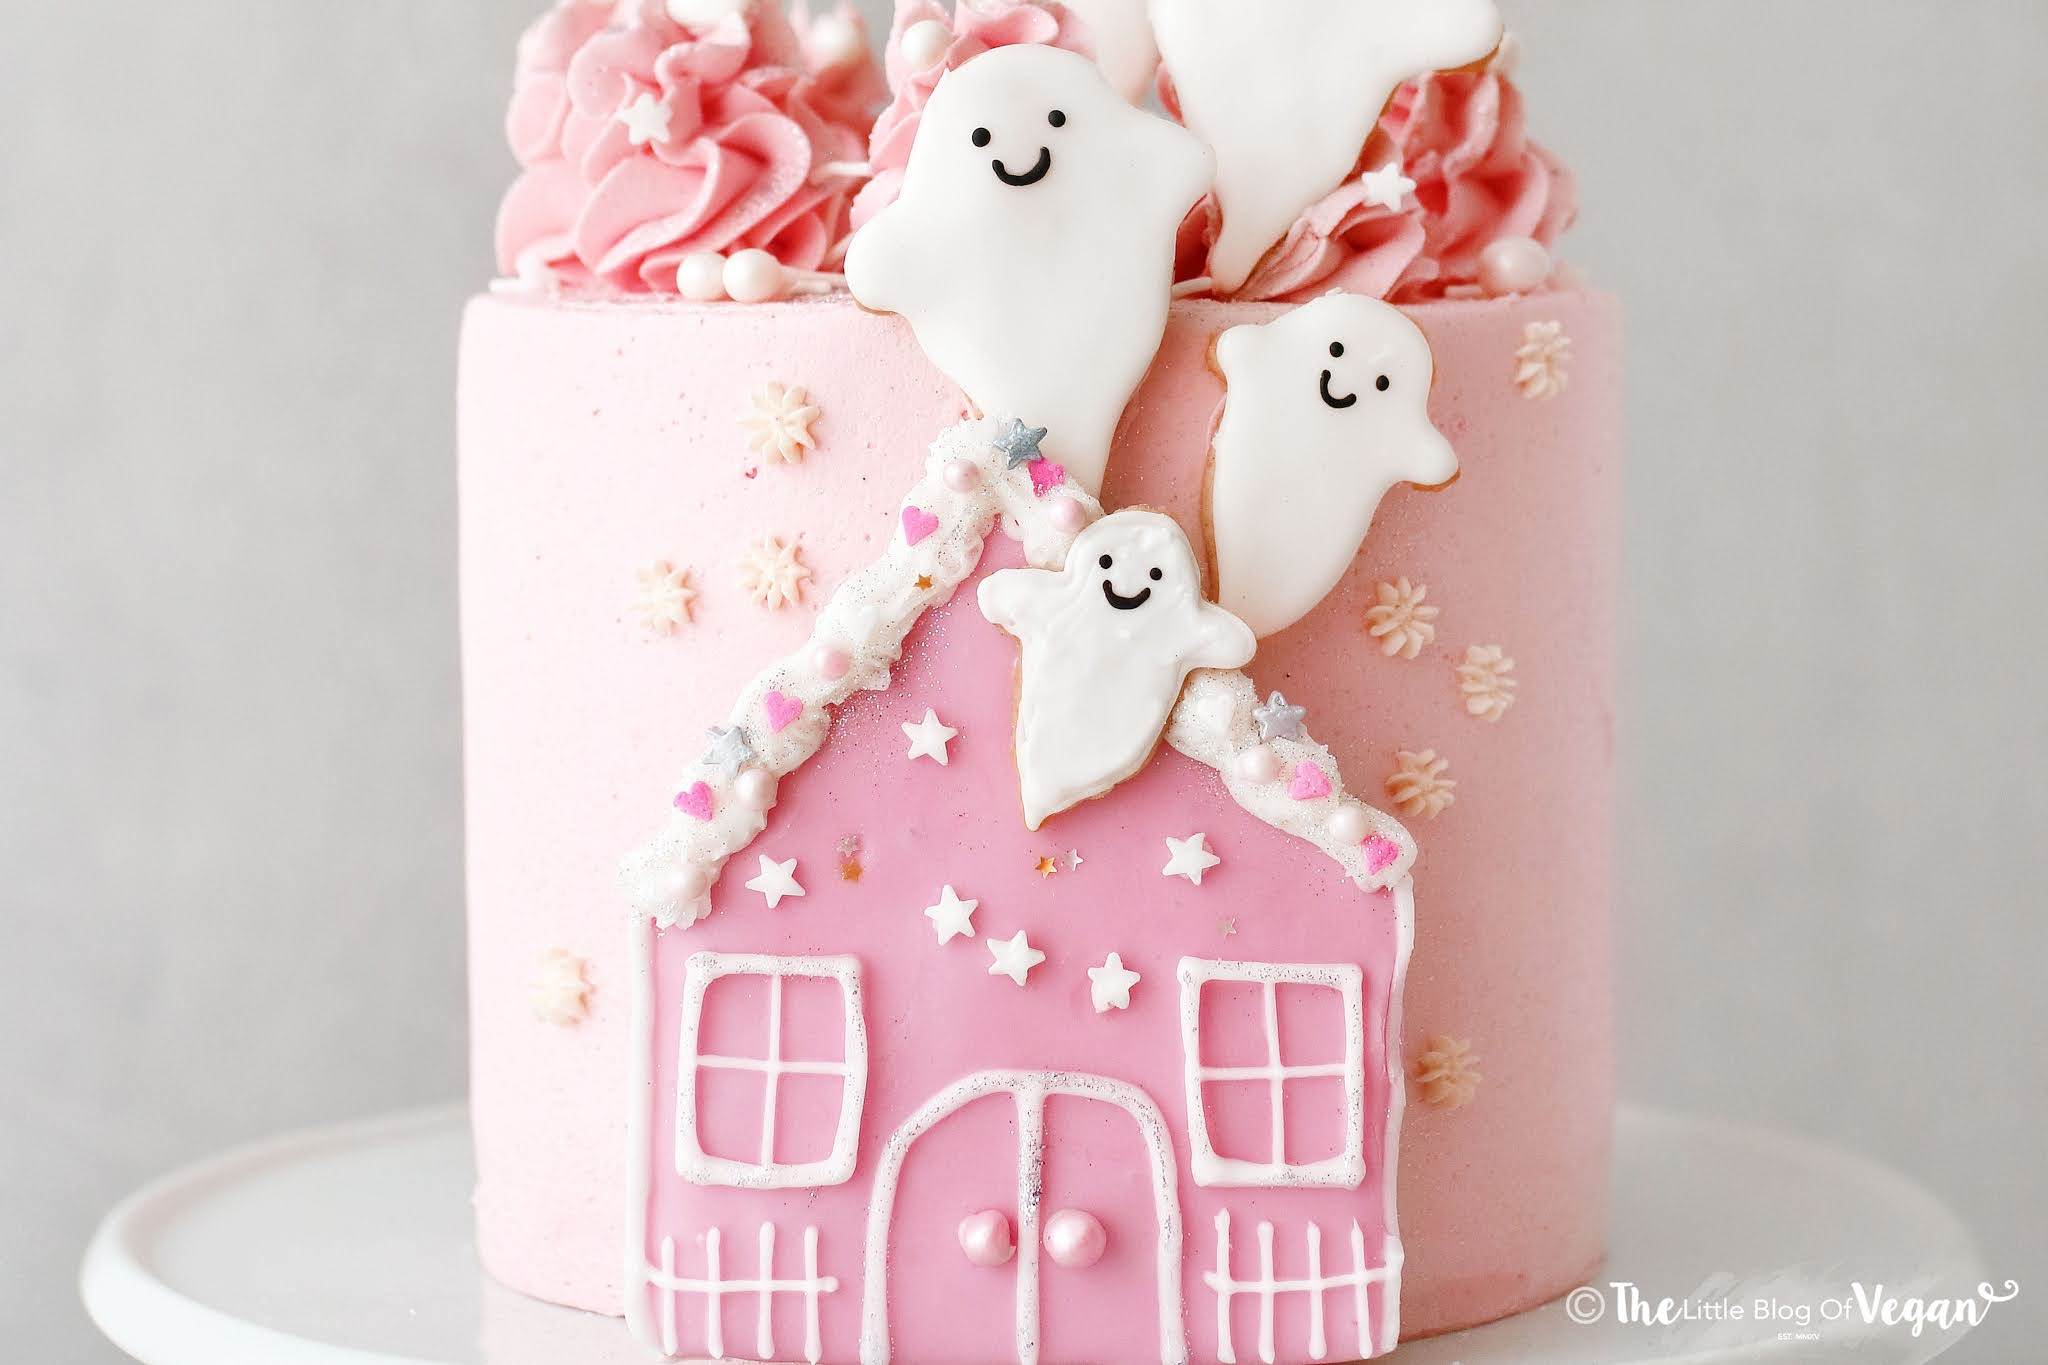 Vegan Strawberry Ghost Cake recipe